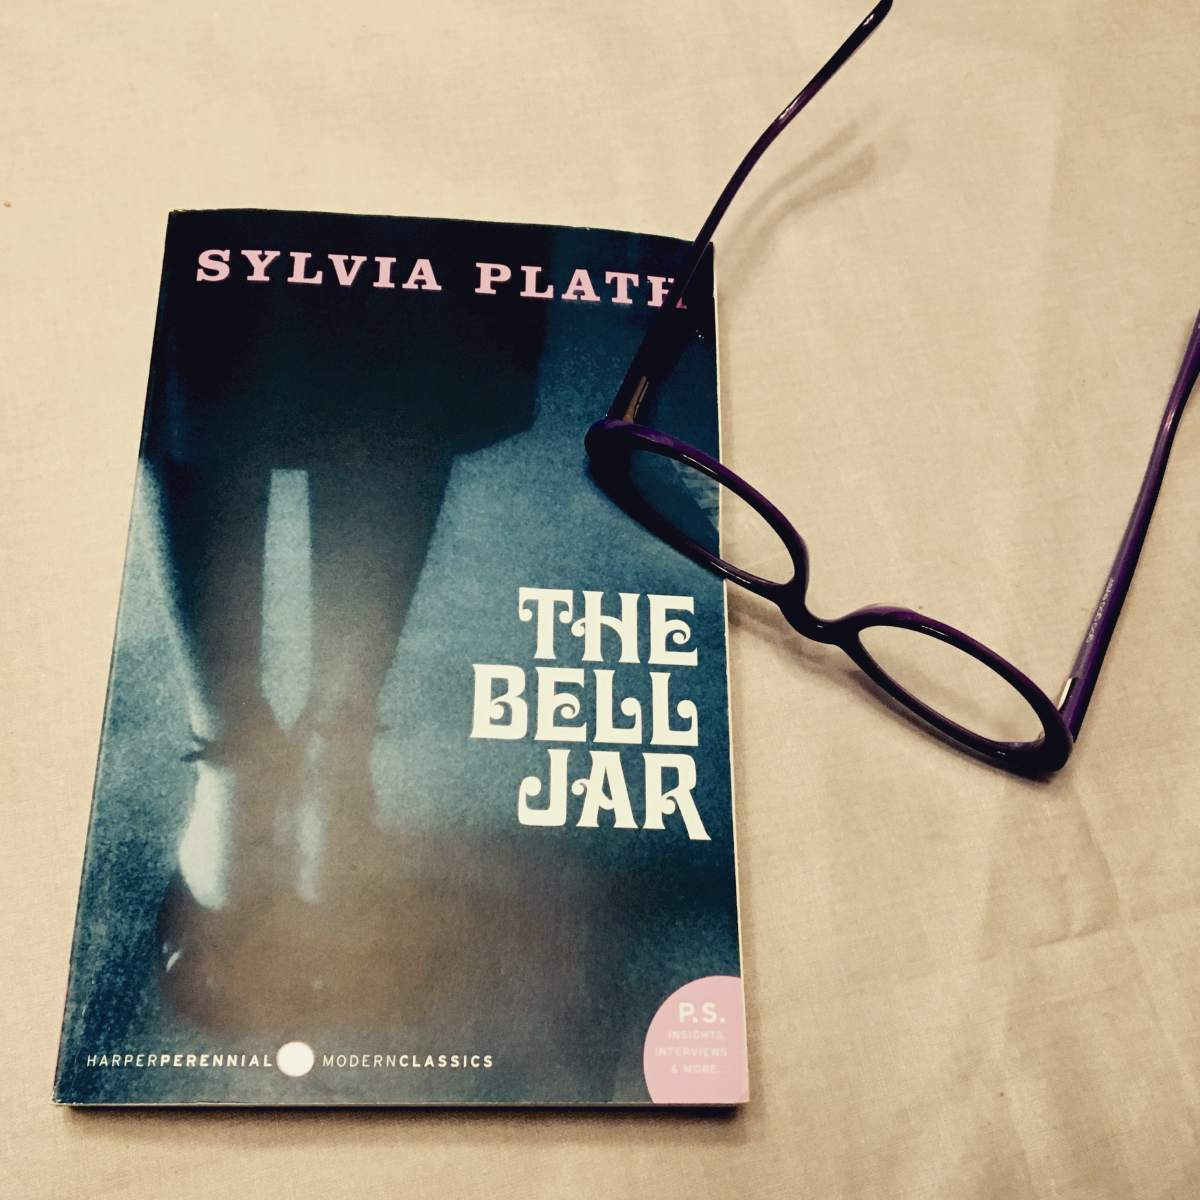 Lifting The Bell Jar